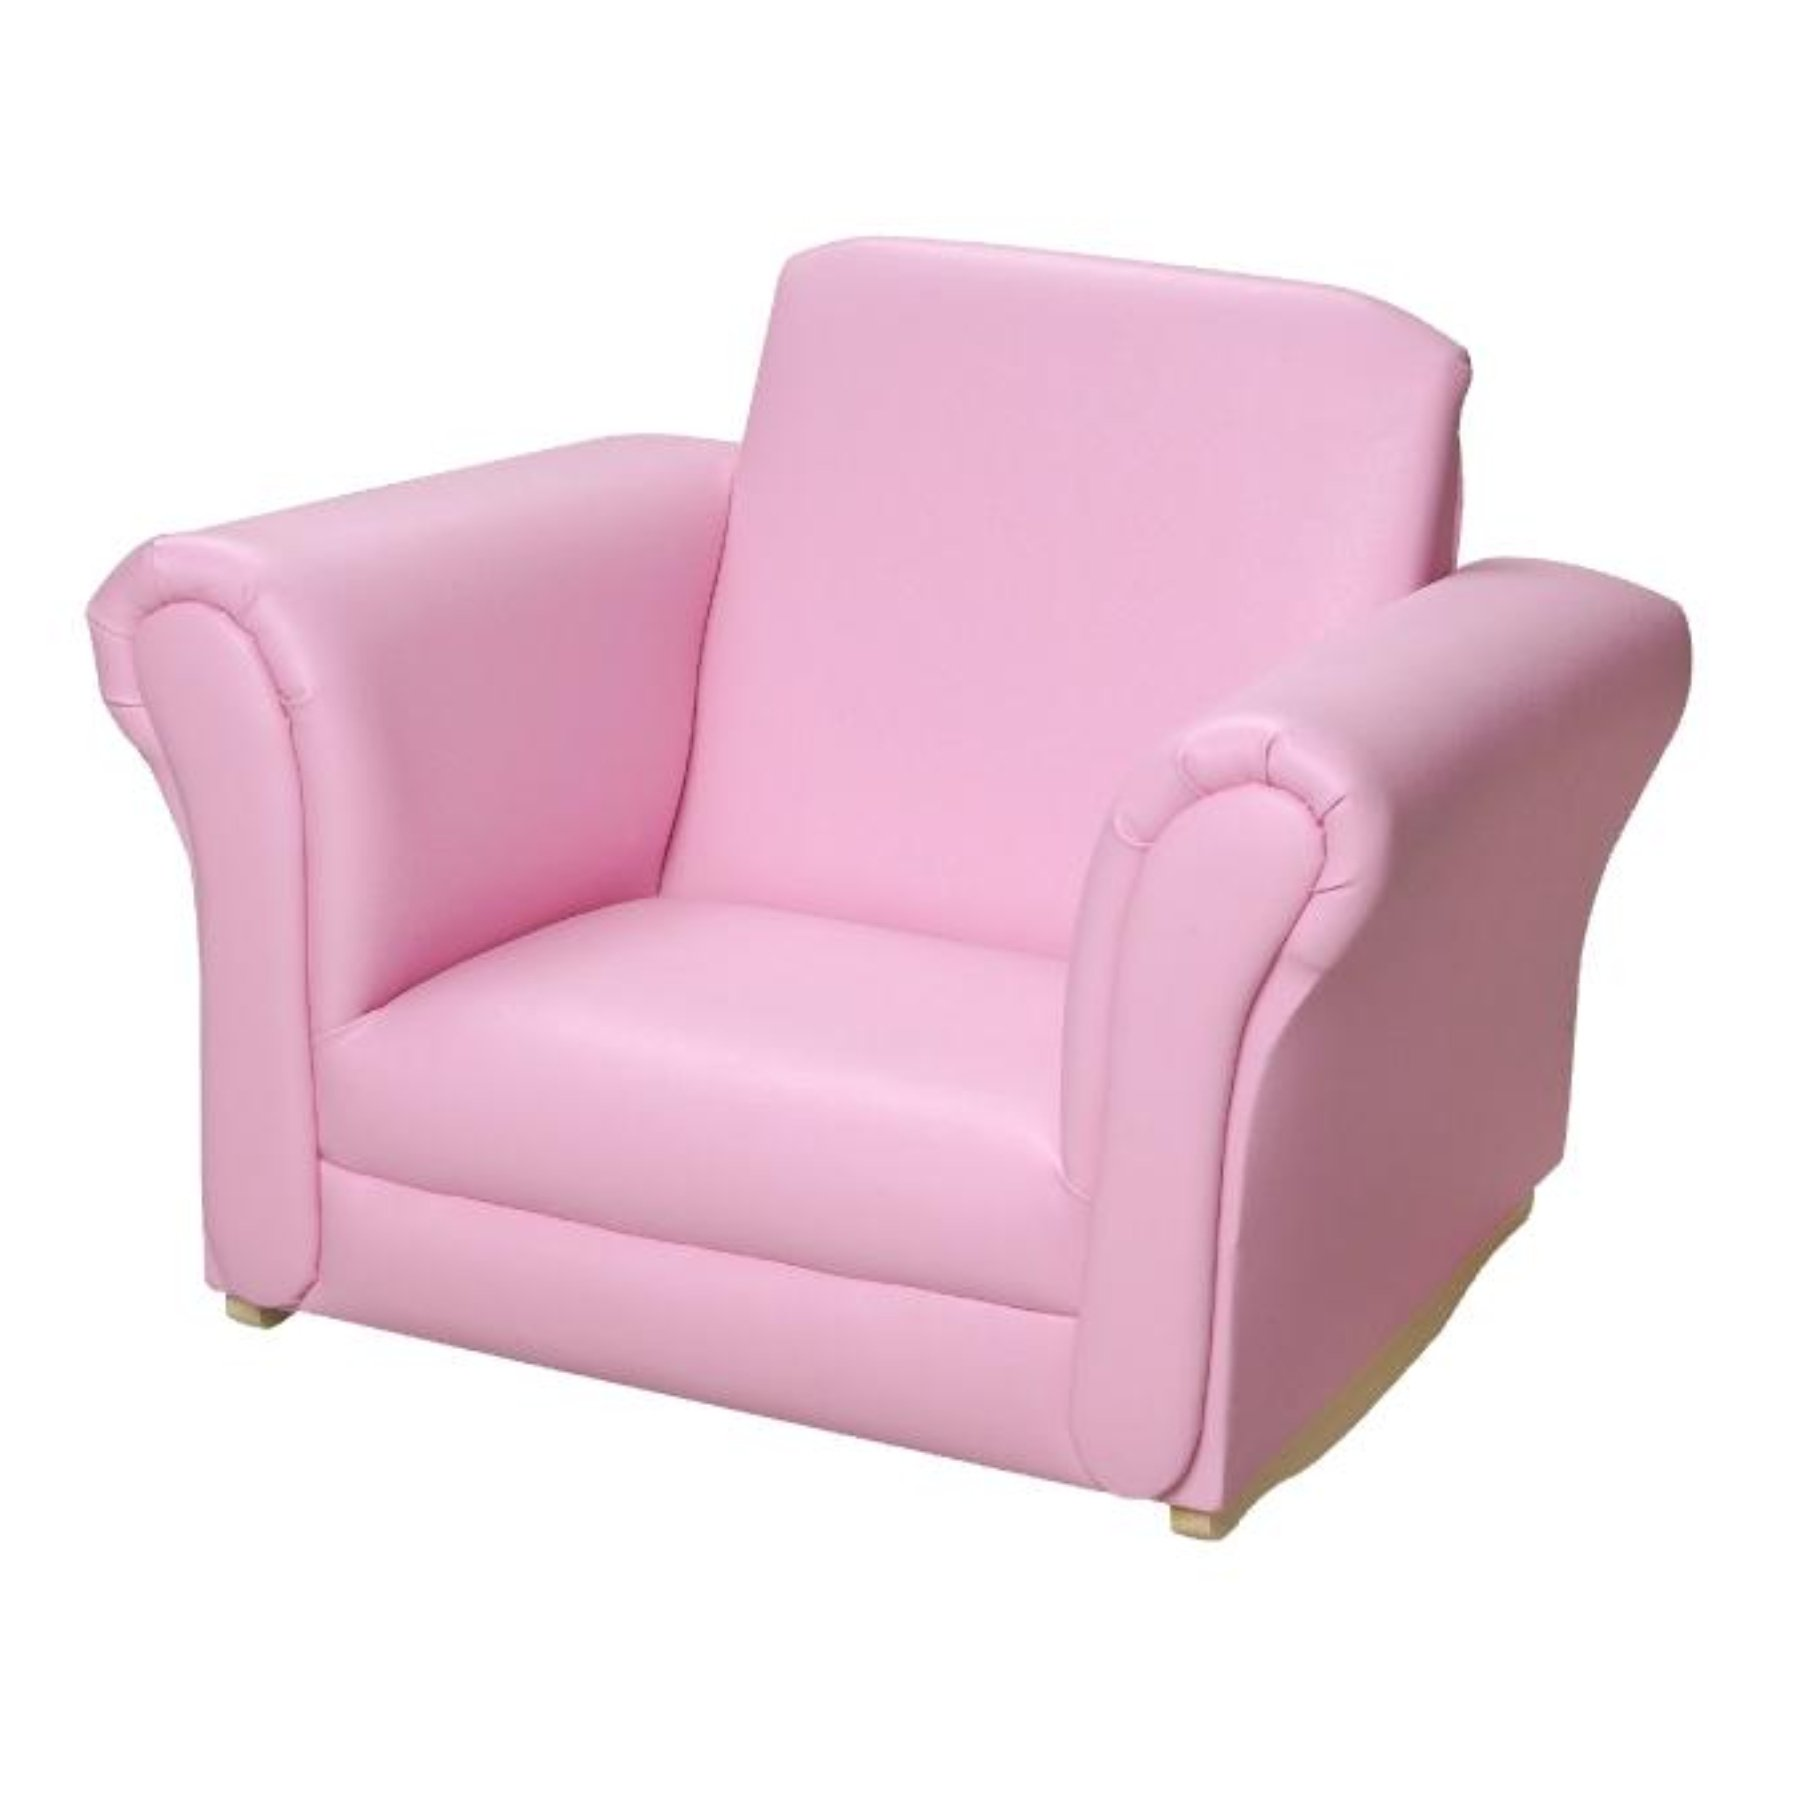 Gift Mark Upholstered Rocking Chair,Pink